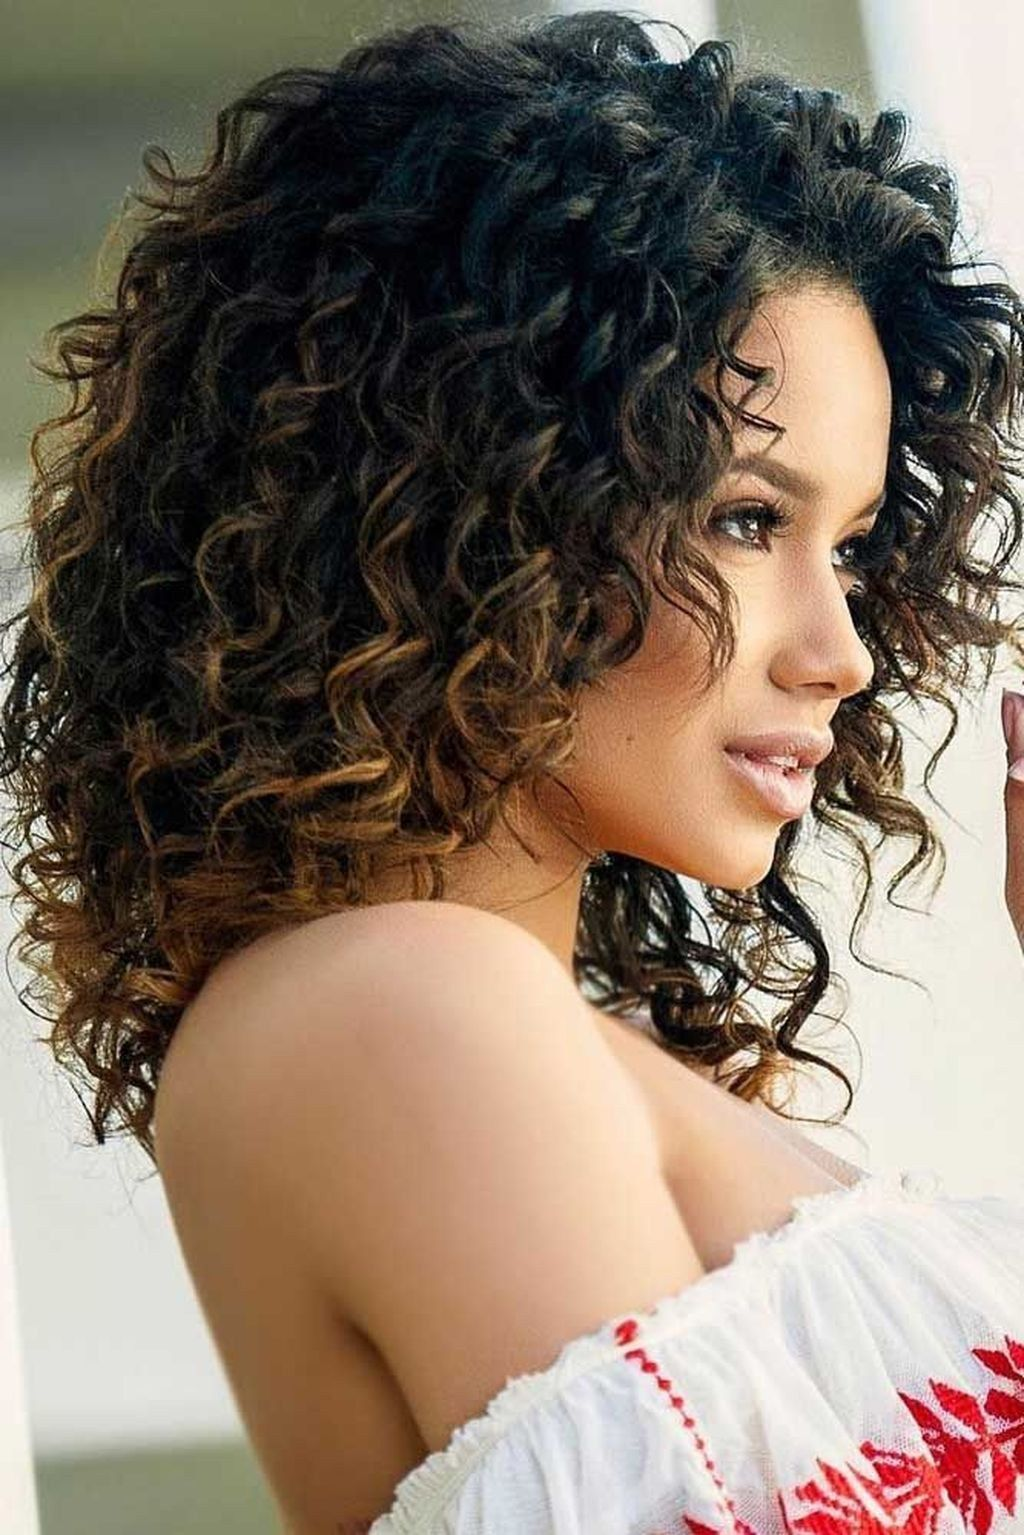 Medium curly hair styles image by melinda wallace on ...